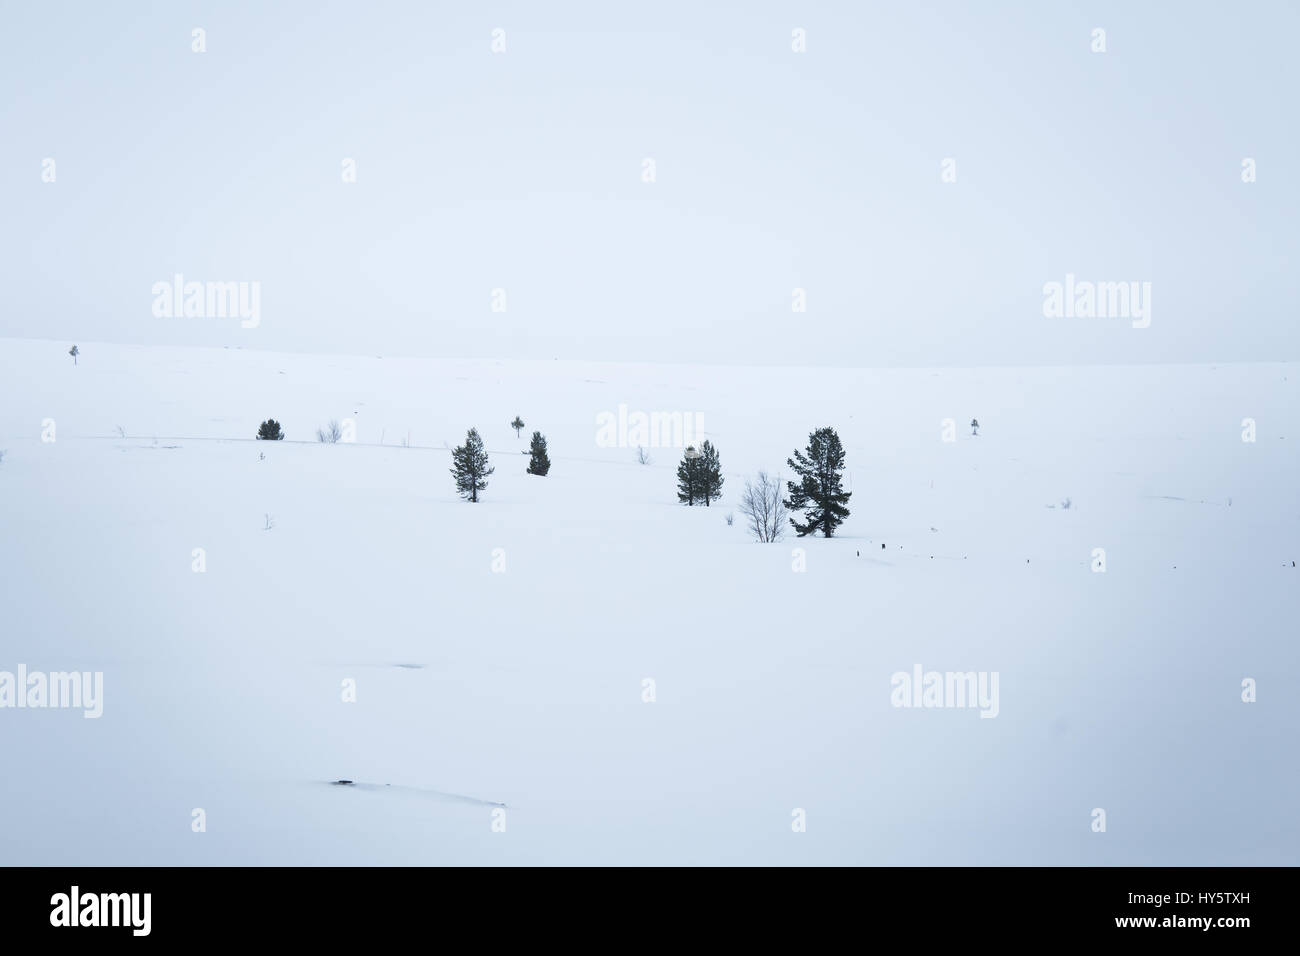 A beautiful, minimalist landscape of snowdrift in Norway. Clean, light, high key, decorative look. - Stock Image